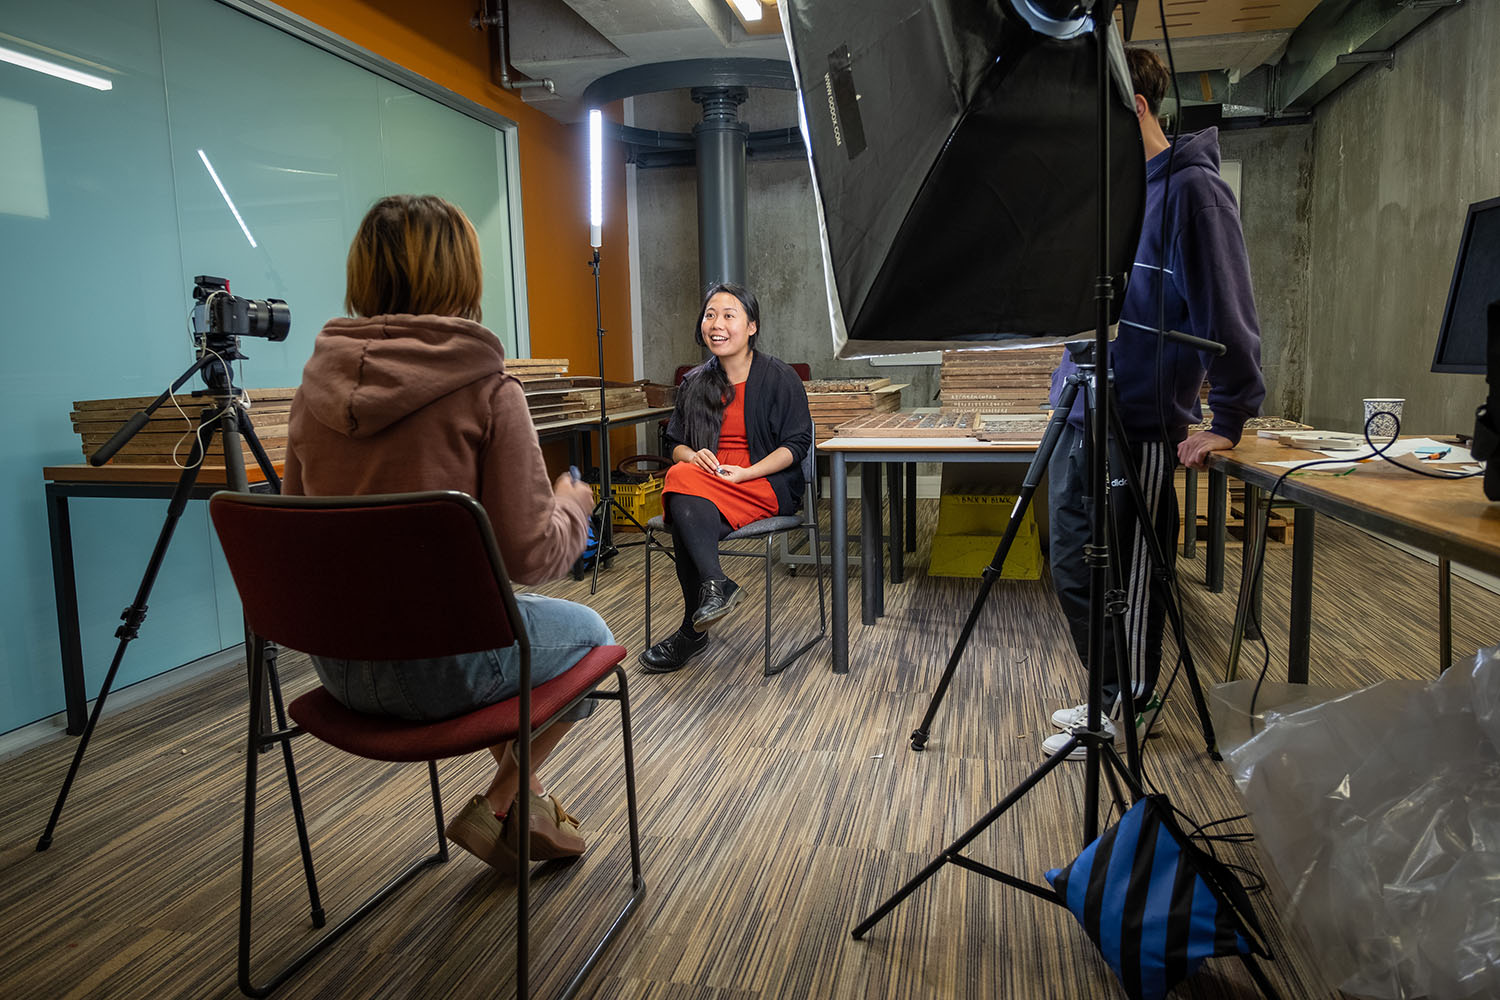 A woman sit on a chair in the middle of a room, being interviewed by another woman sitting opposite her. A large light shines on the subject